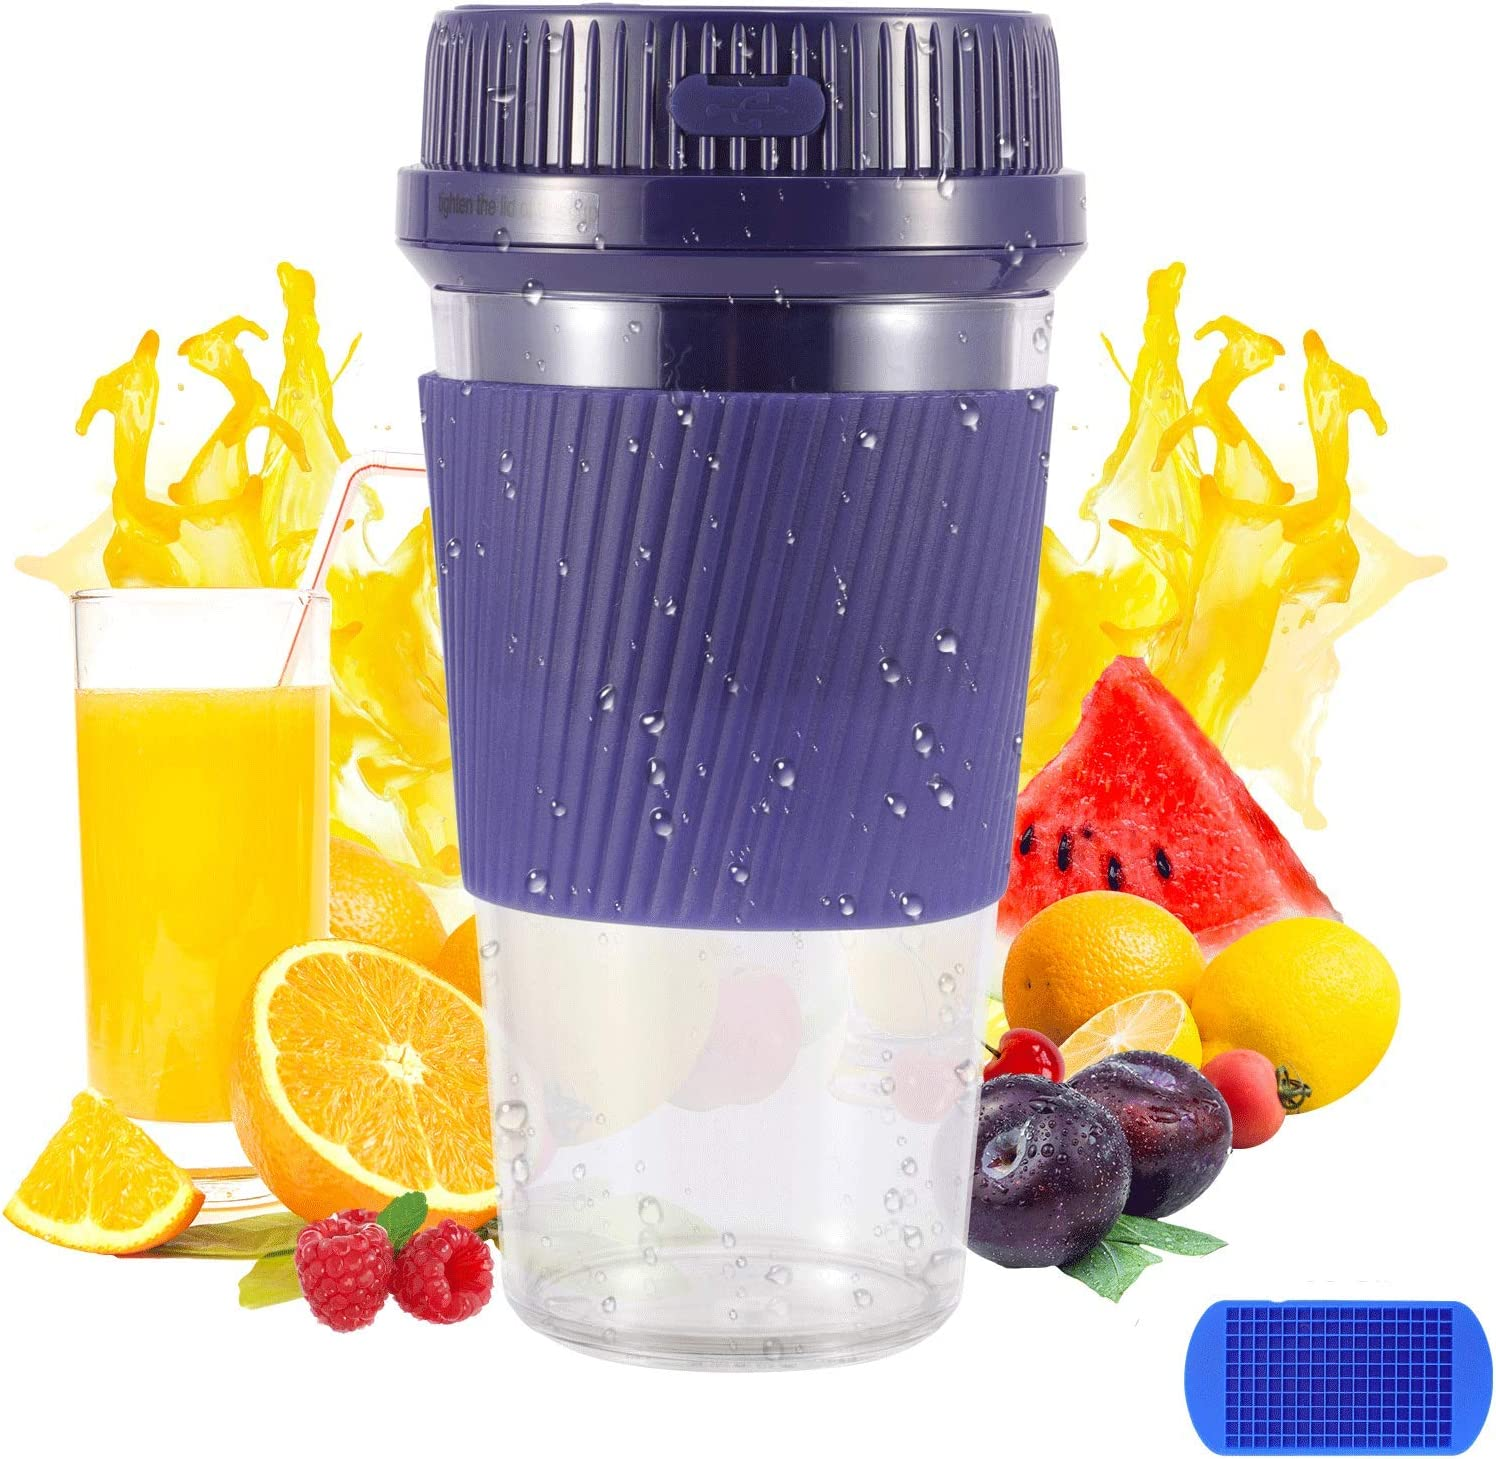 Portable Blender, Mini Blender for Smoothies and Shakes, Personal Blender with Rechargeable USB, Baby Food Maker Made with BPA Free Material, MIYAJOY Small Blender Juicer Cup Smoothies Cup for Kitchen, Office, Sports, Travel, Outdoors. With Ice Cube Tray Gift.